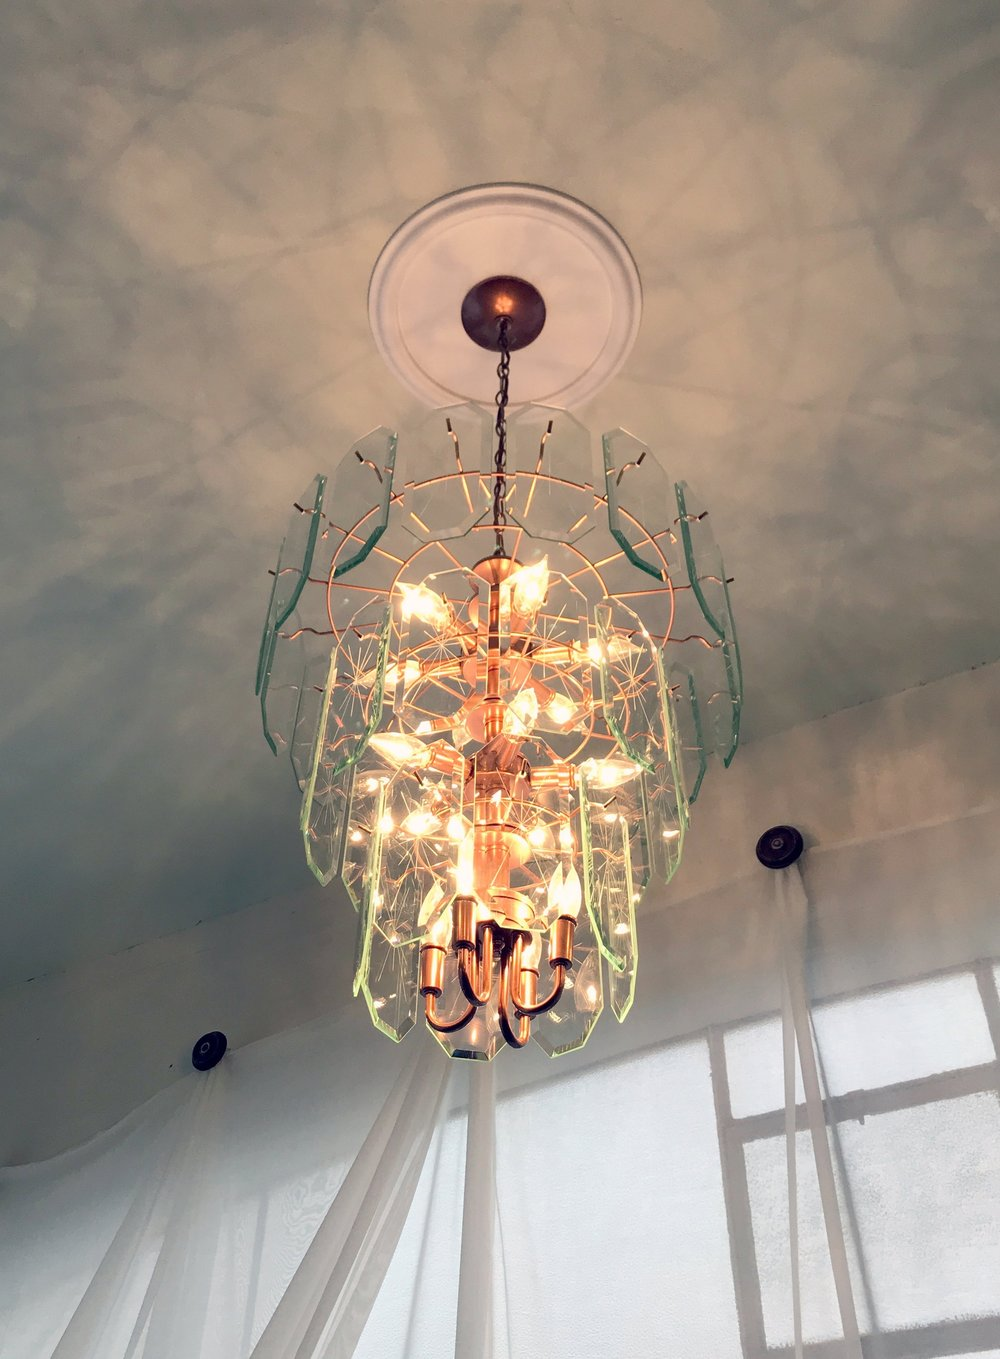 Kansas_City_Small_Wedding_Venue_Elope_Intimate_Ceremony_Budget_Affordable_CHANDELIER.jpg